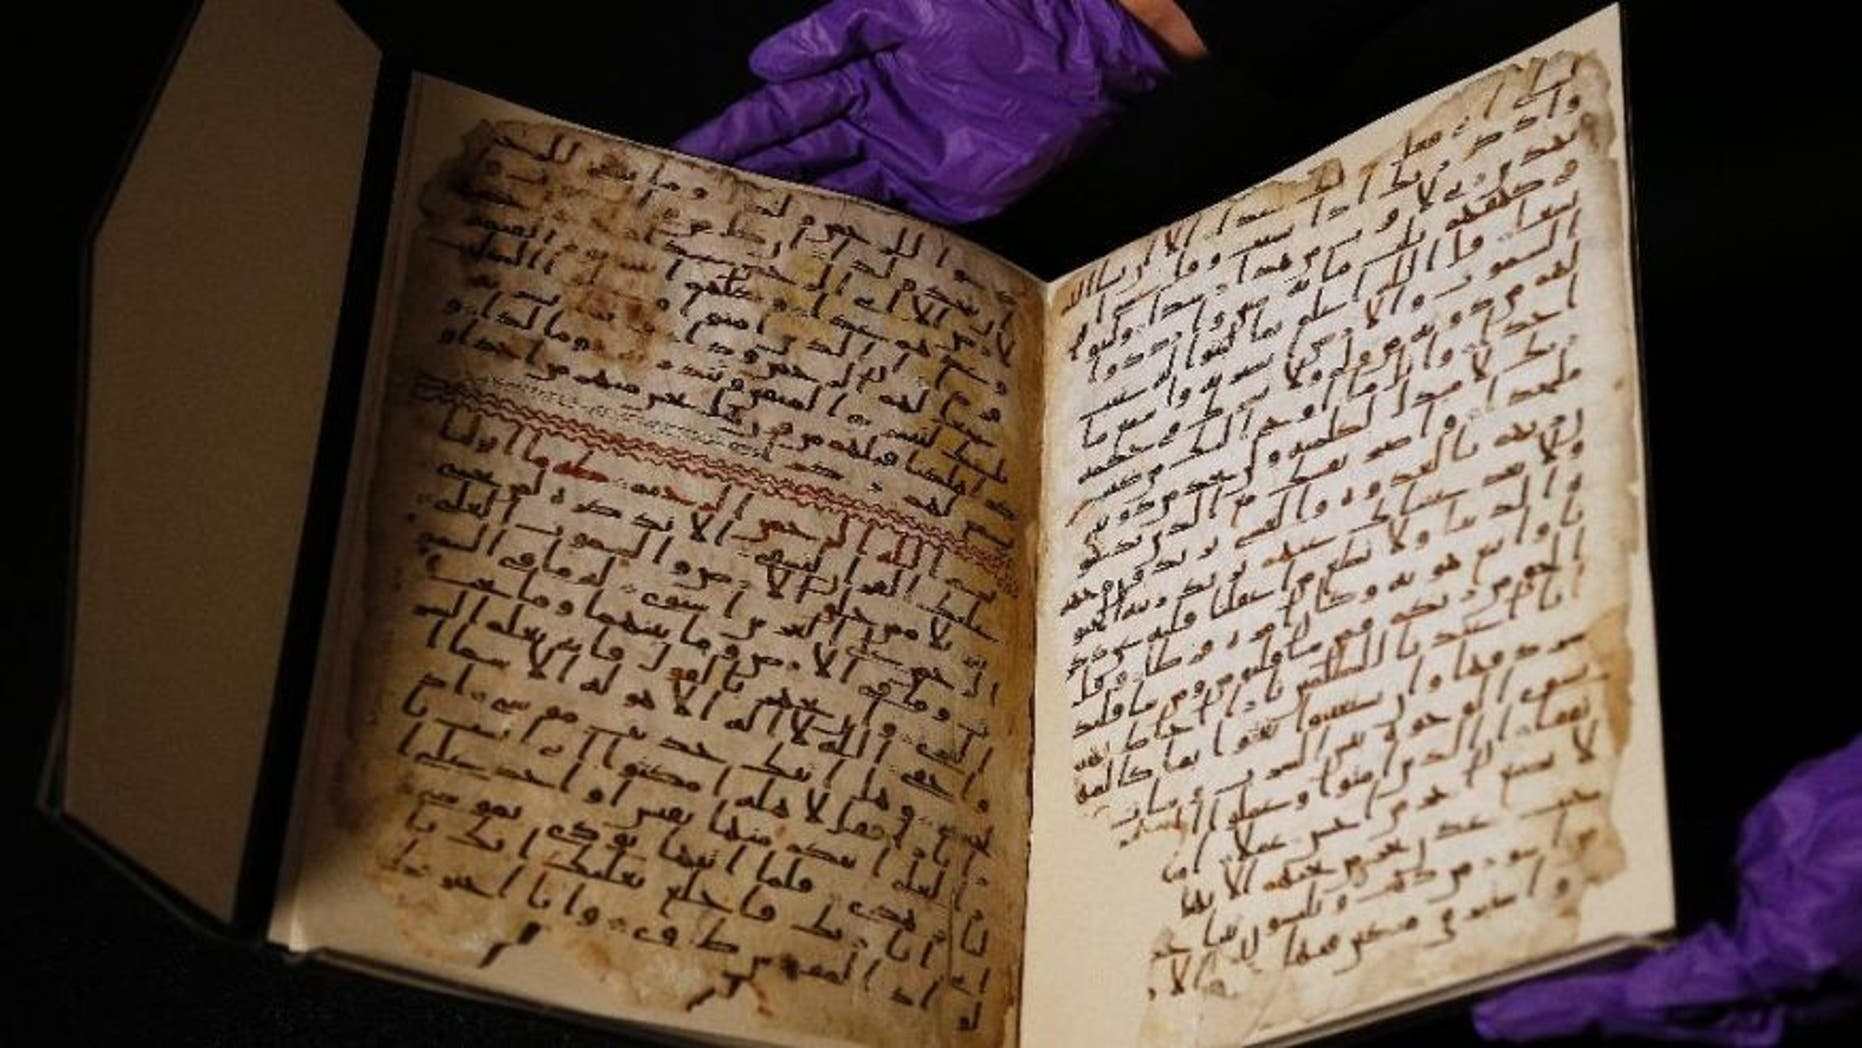 July 22, 2015: A university assistant shows fragments of an old Koran at the University in Birmingham, U.K.